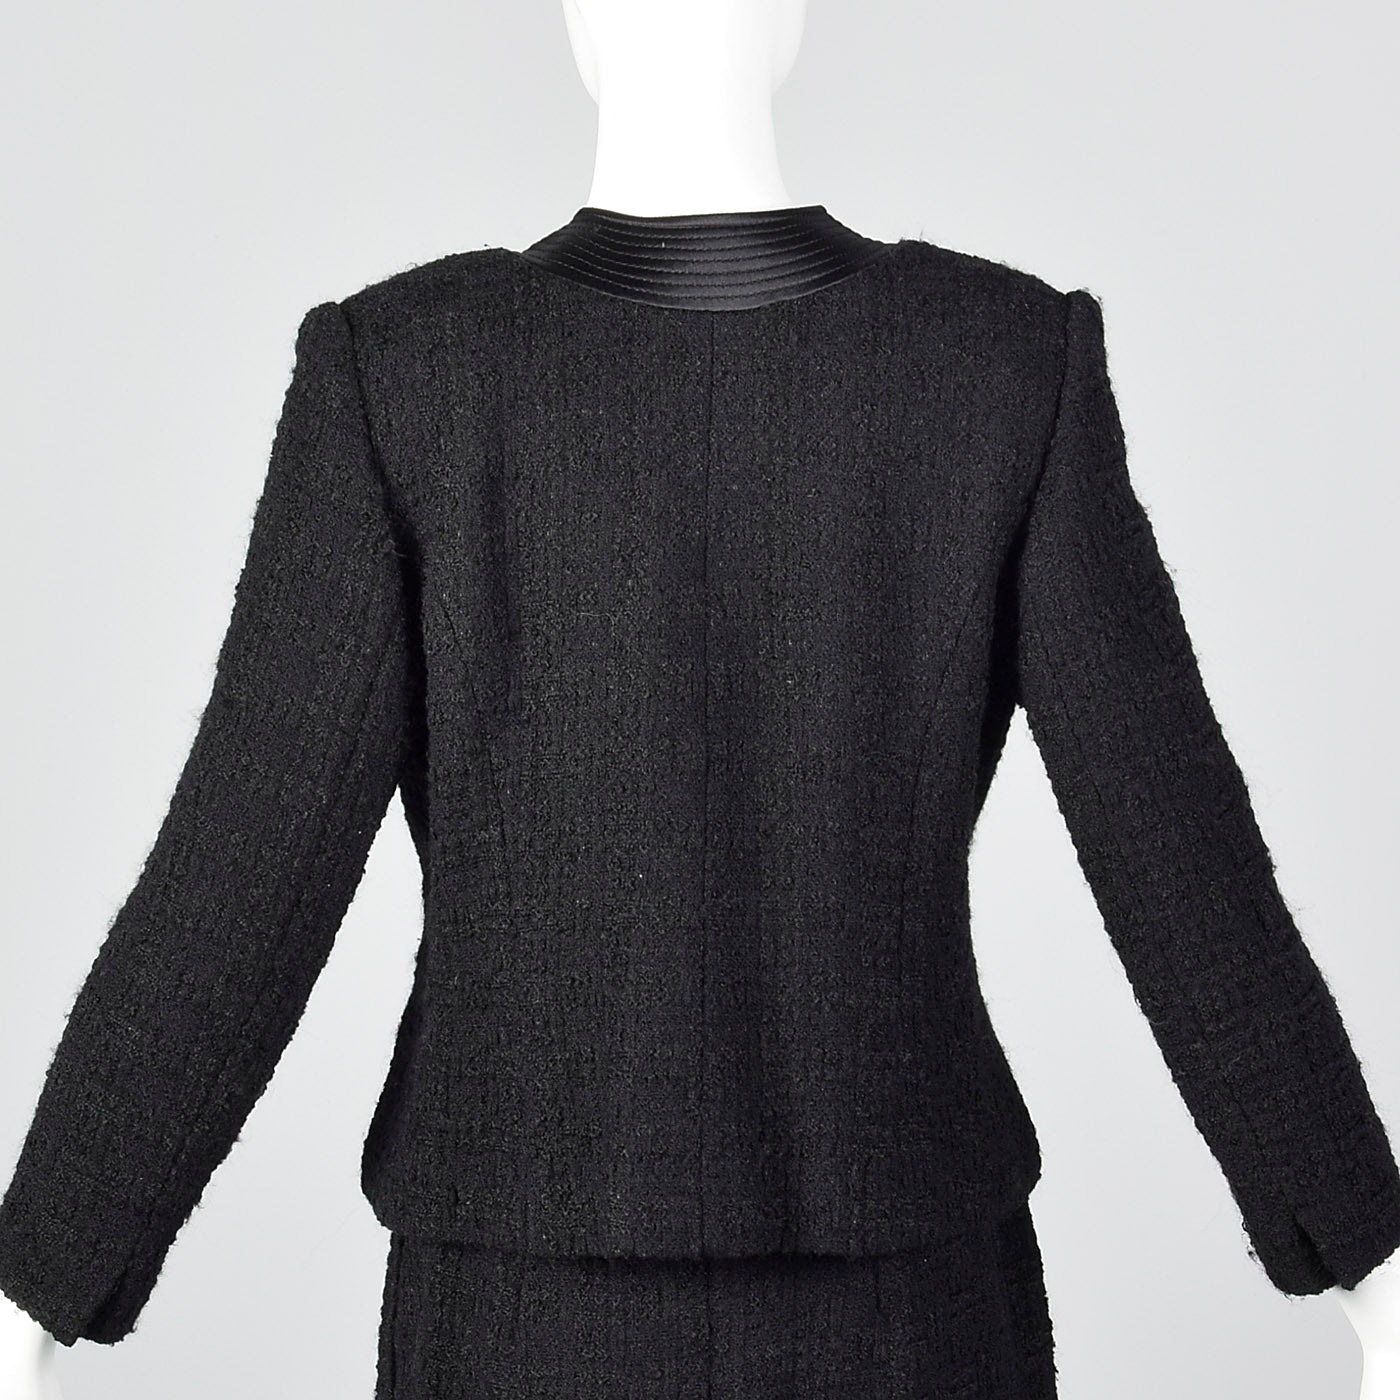 1960s Black Chunky Tweed Skirt Suit